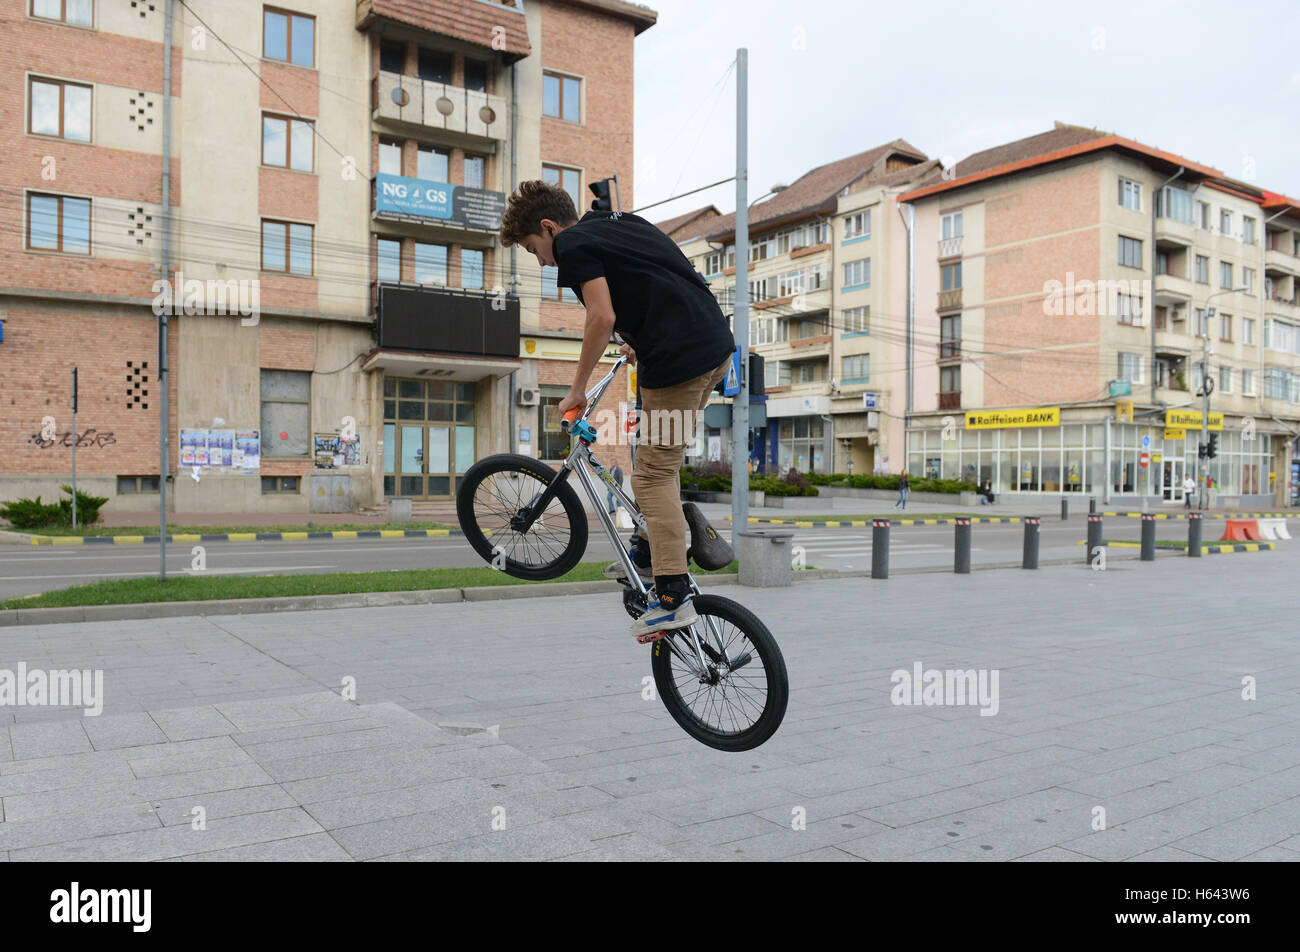 A young Romanian boy practicing stunts on his bicycle in the center of Suceava, Romania. - Stock Image